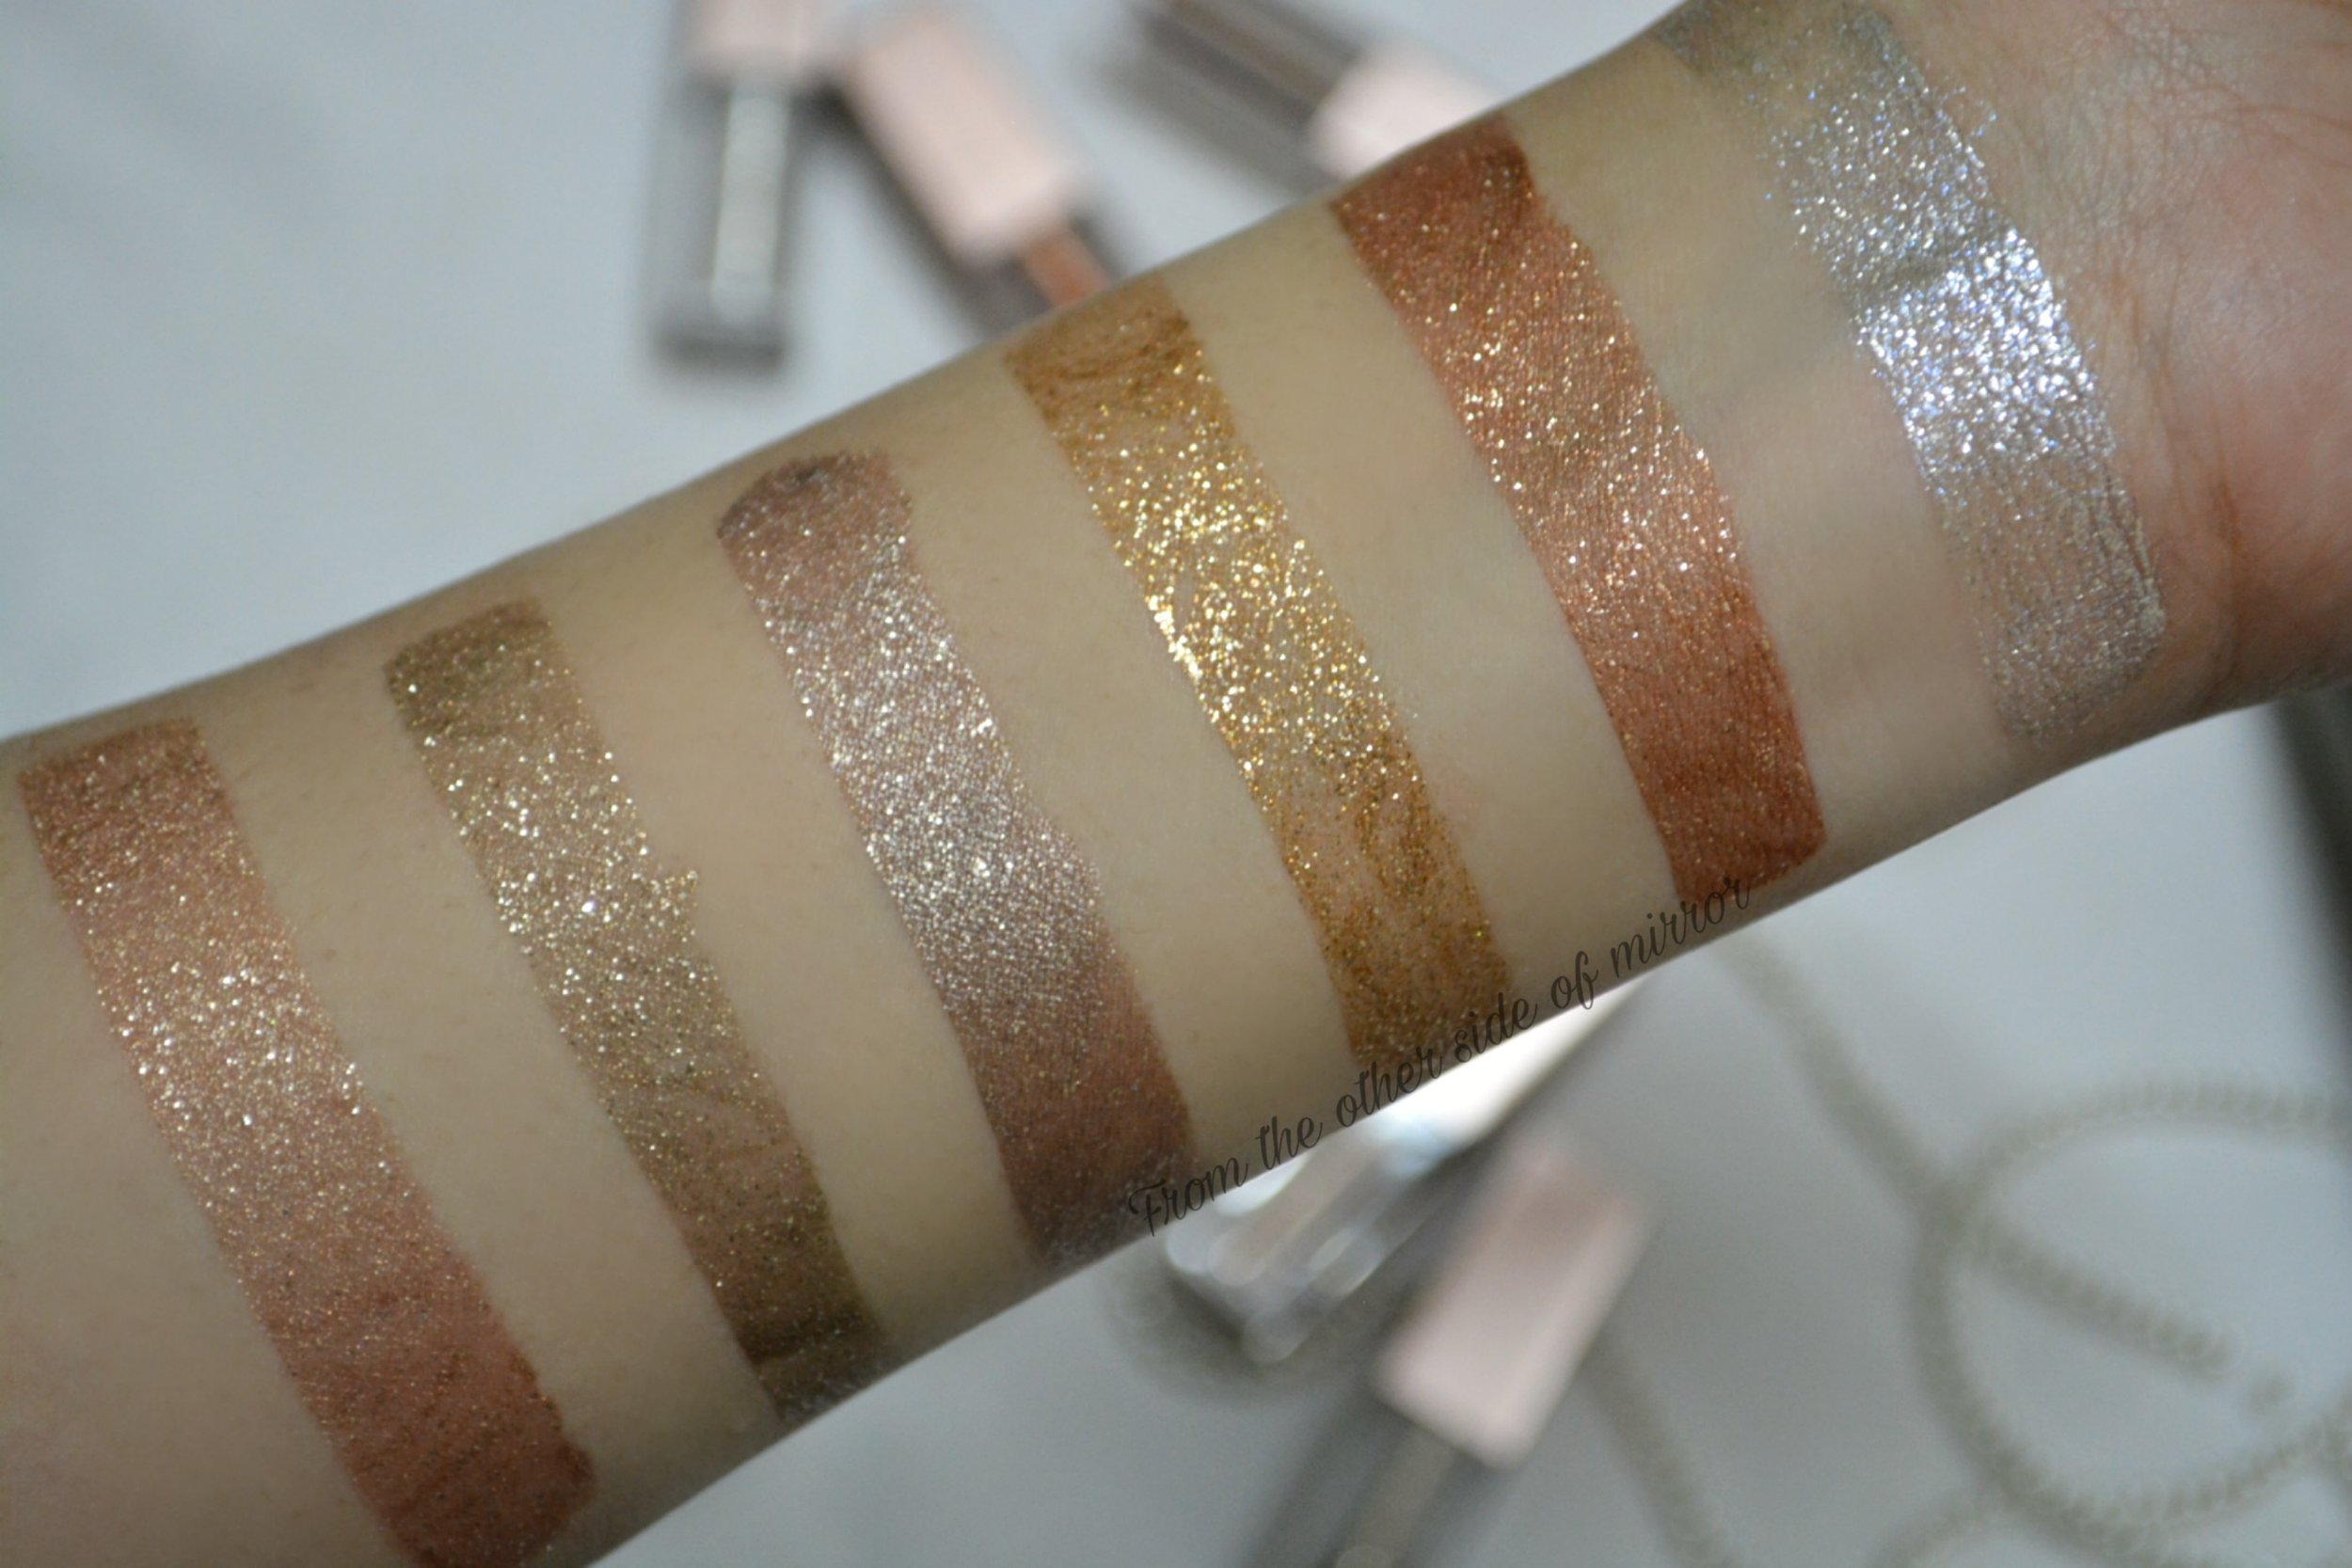 Heng Fang Shimmer Metal Glitter Eyeshadow - Swatches